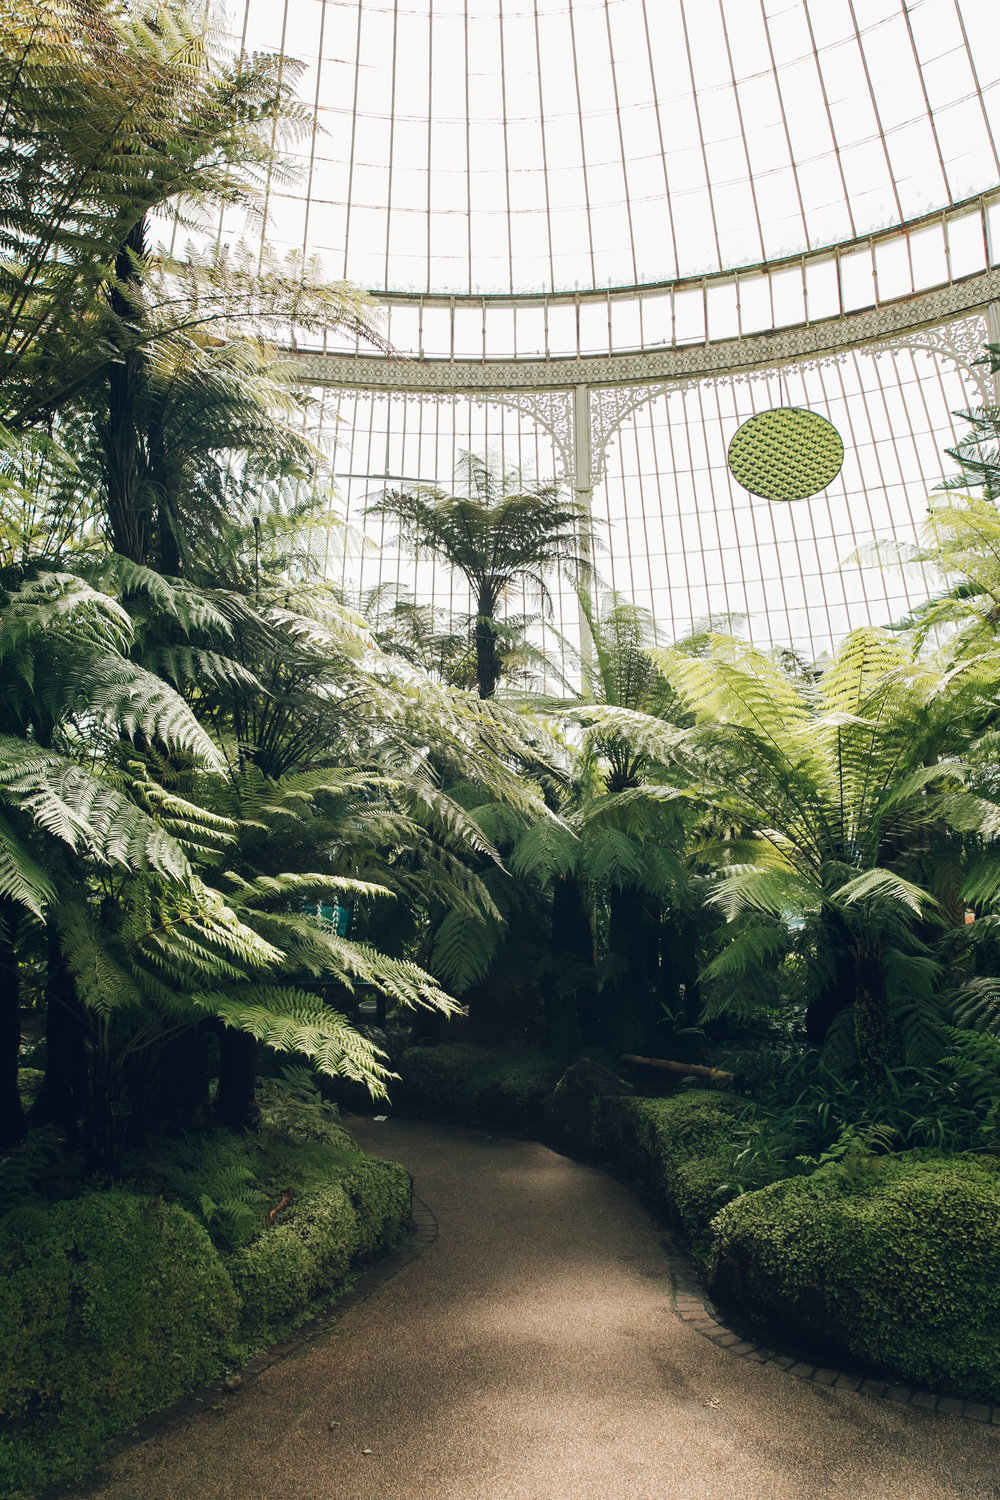 The Kibble Palace of Glasgow Botanic Gardens.